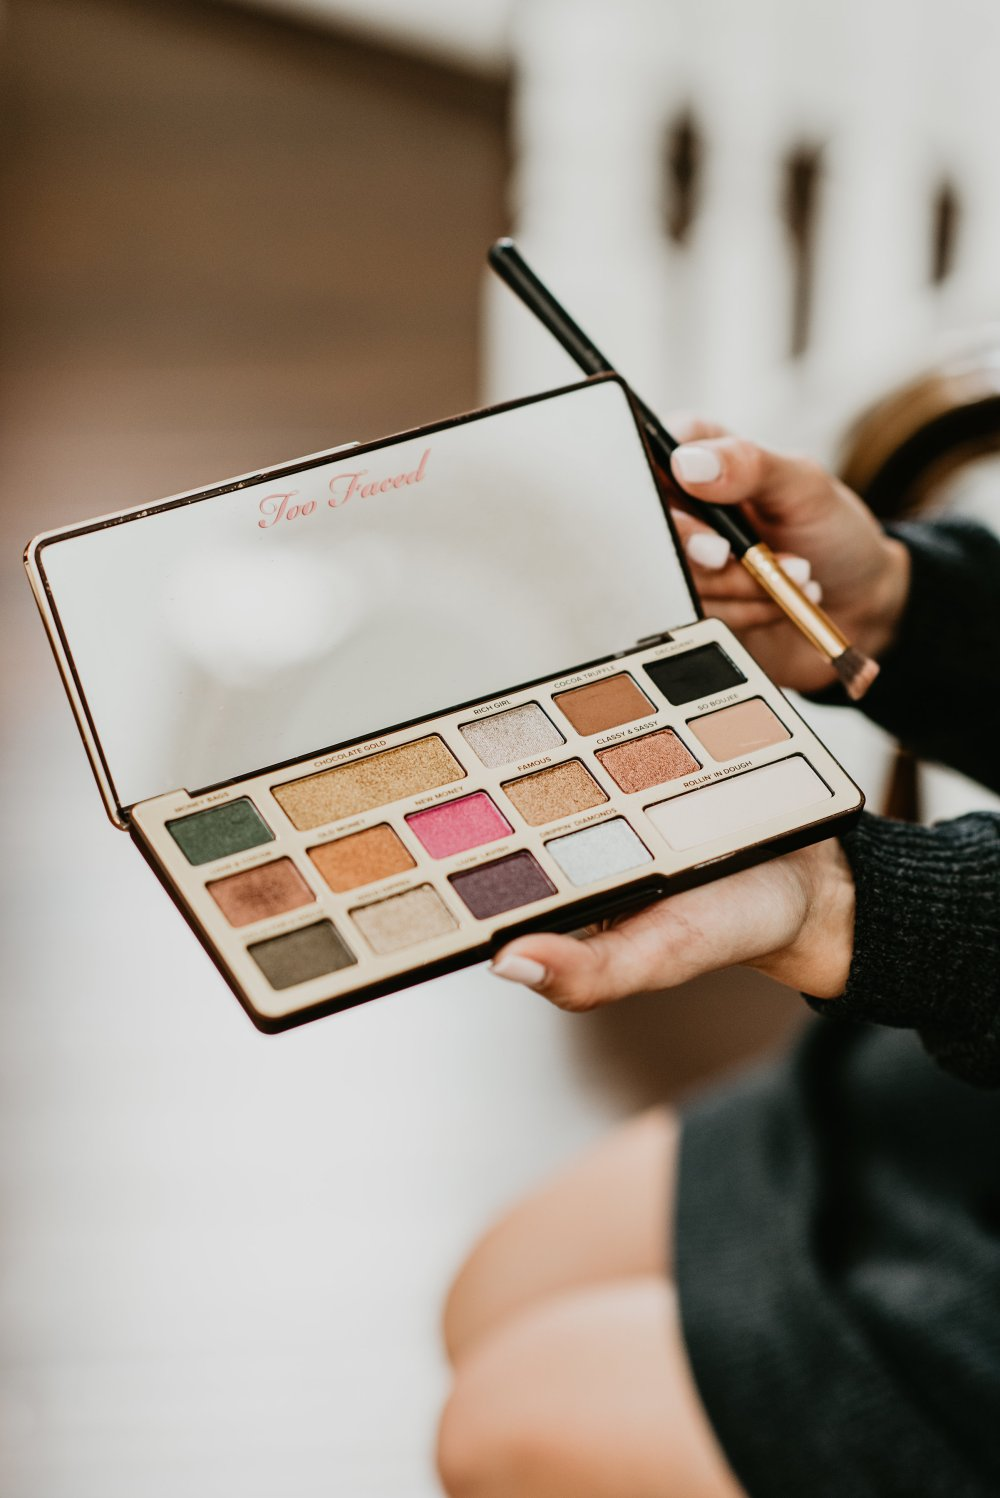 My favorite eye shadow palettes that I am in love with! These have such pigmented color and great neutral shades for a natural look! #makeupideas #makeuptips #eyeshadowpalette #neutralmakeup #makeuplove